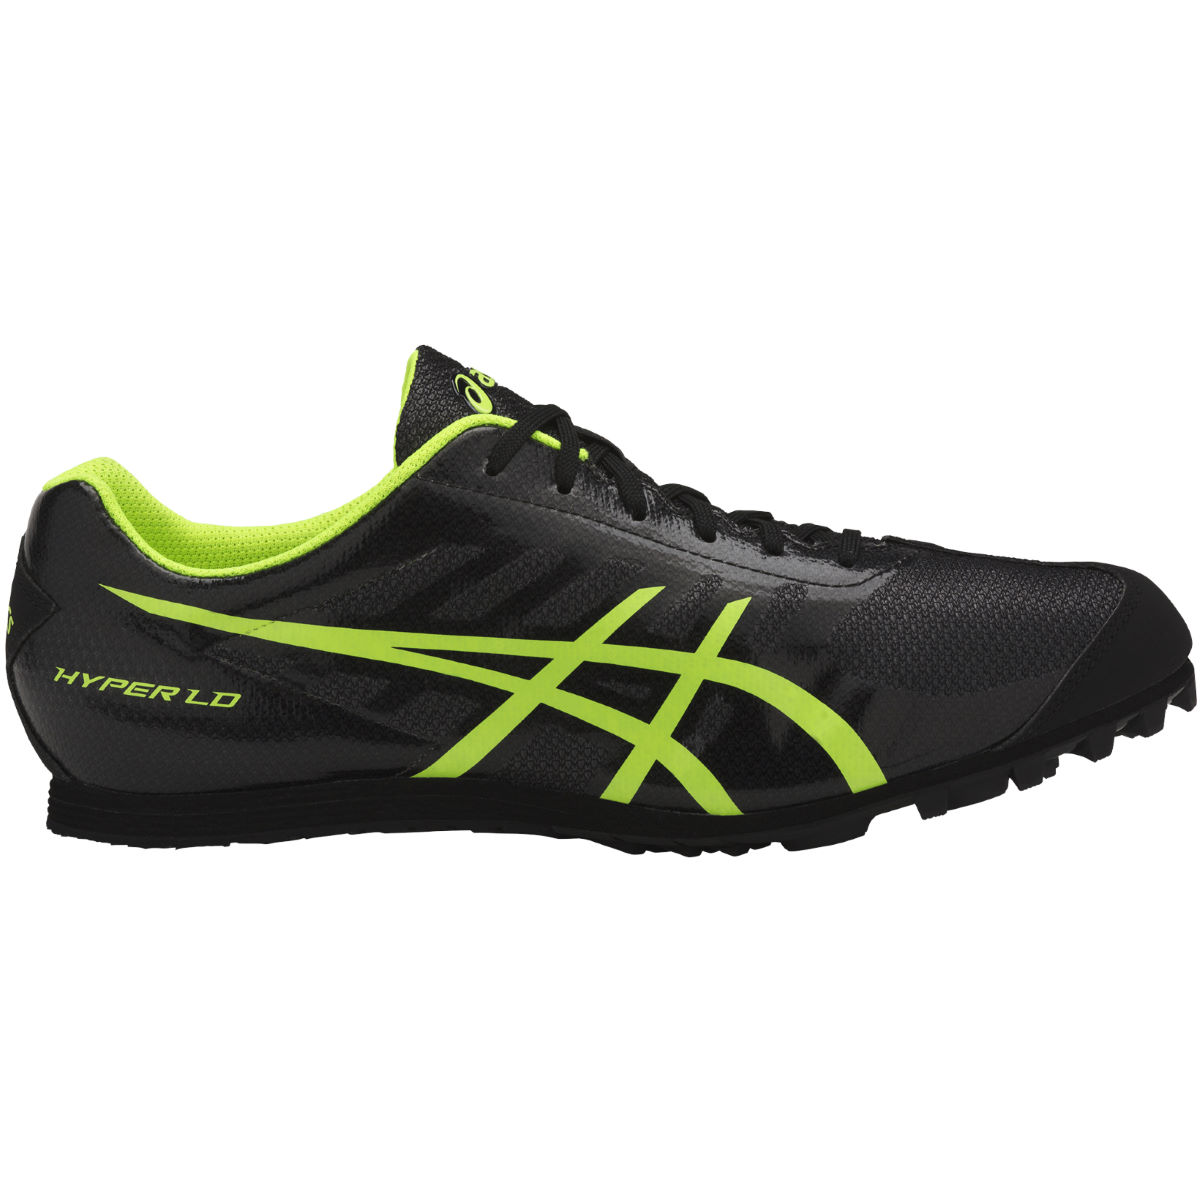 Chaussures Asics Hyper LD 5 - UK 11 Black/Saftey Yellow